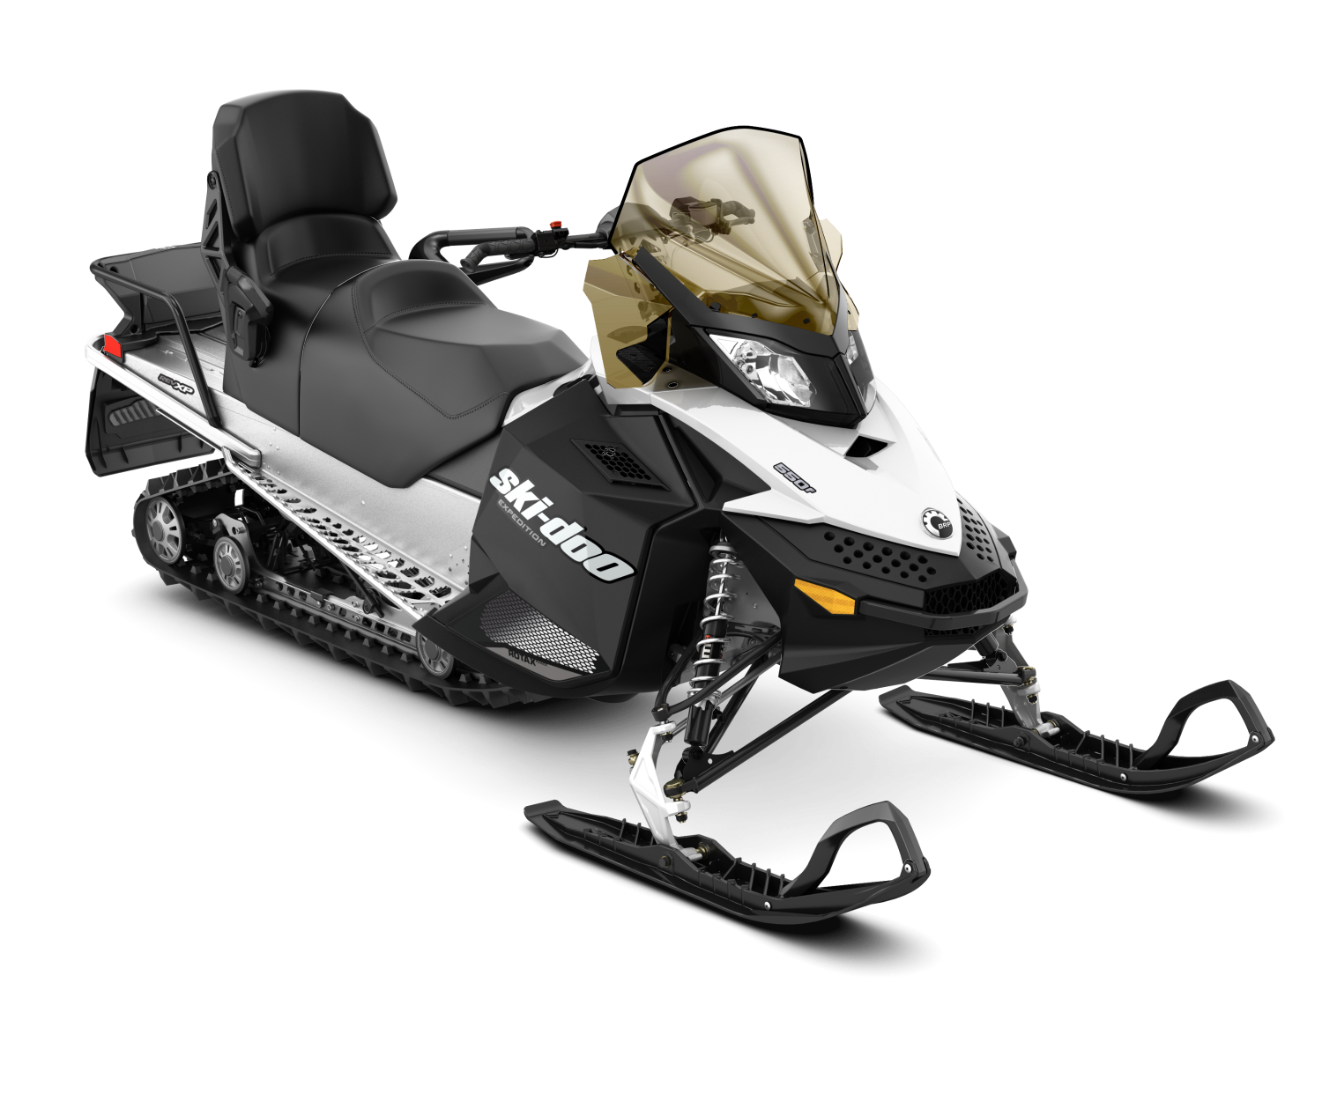 2018 Ski-Doo Expedition Sport 550F in Huron, Ohio